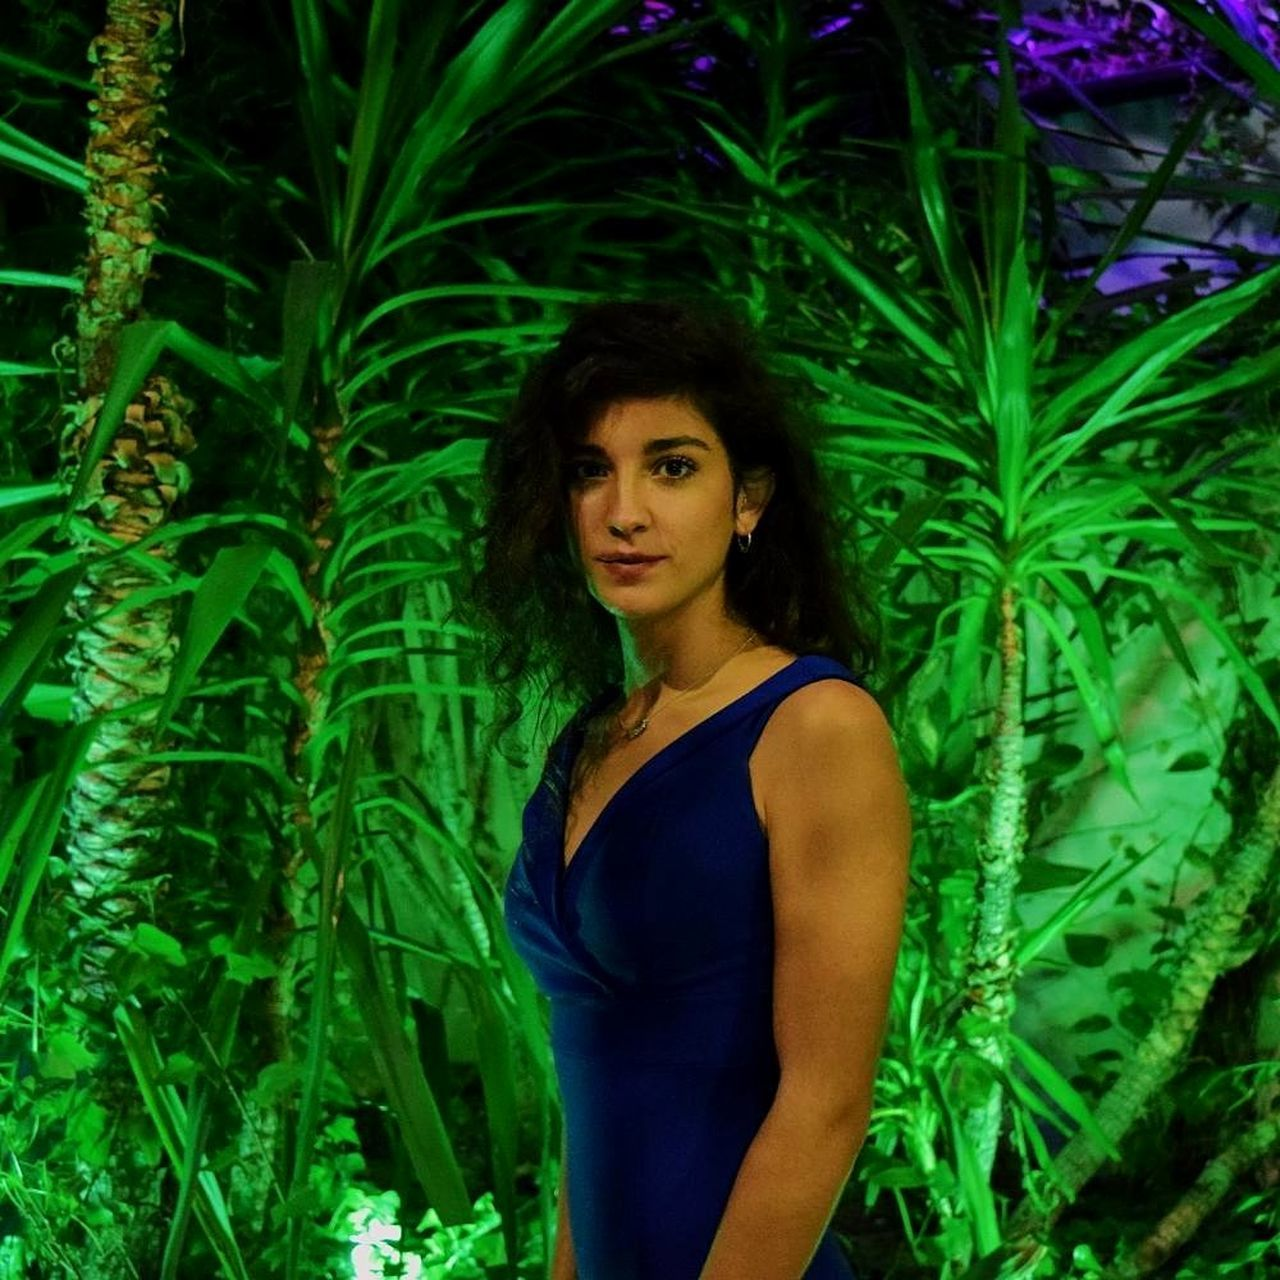 green color, young adult, standing, one person, looking at camera, portrait, plant, beautiful woman, real people, young women, growth, lifestyles, leaf, outdoors, nature, night, tree, people